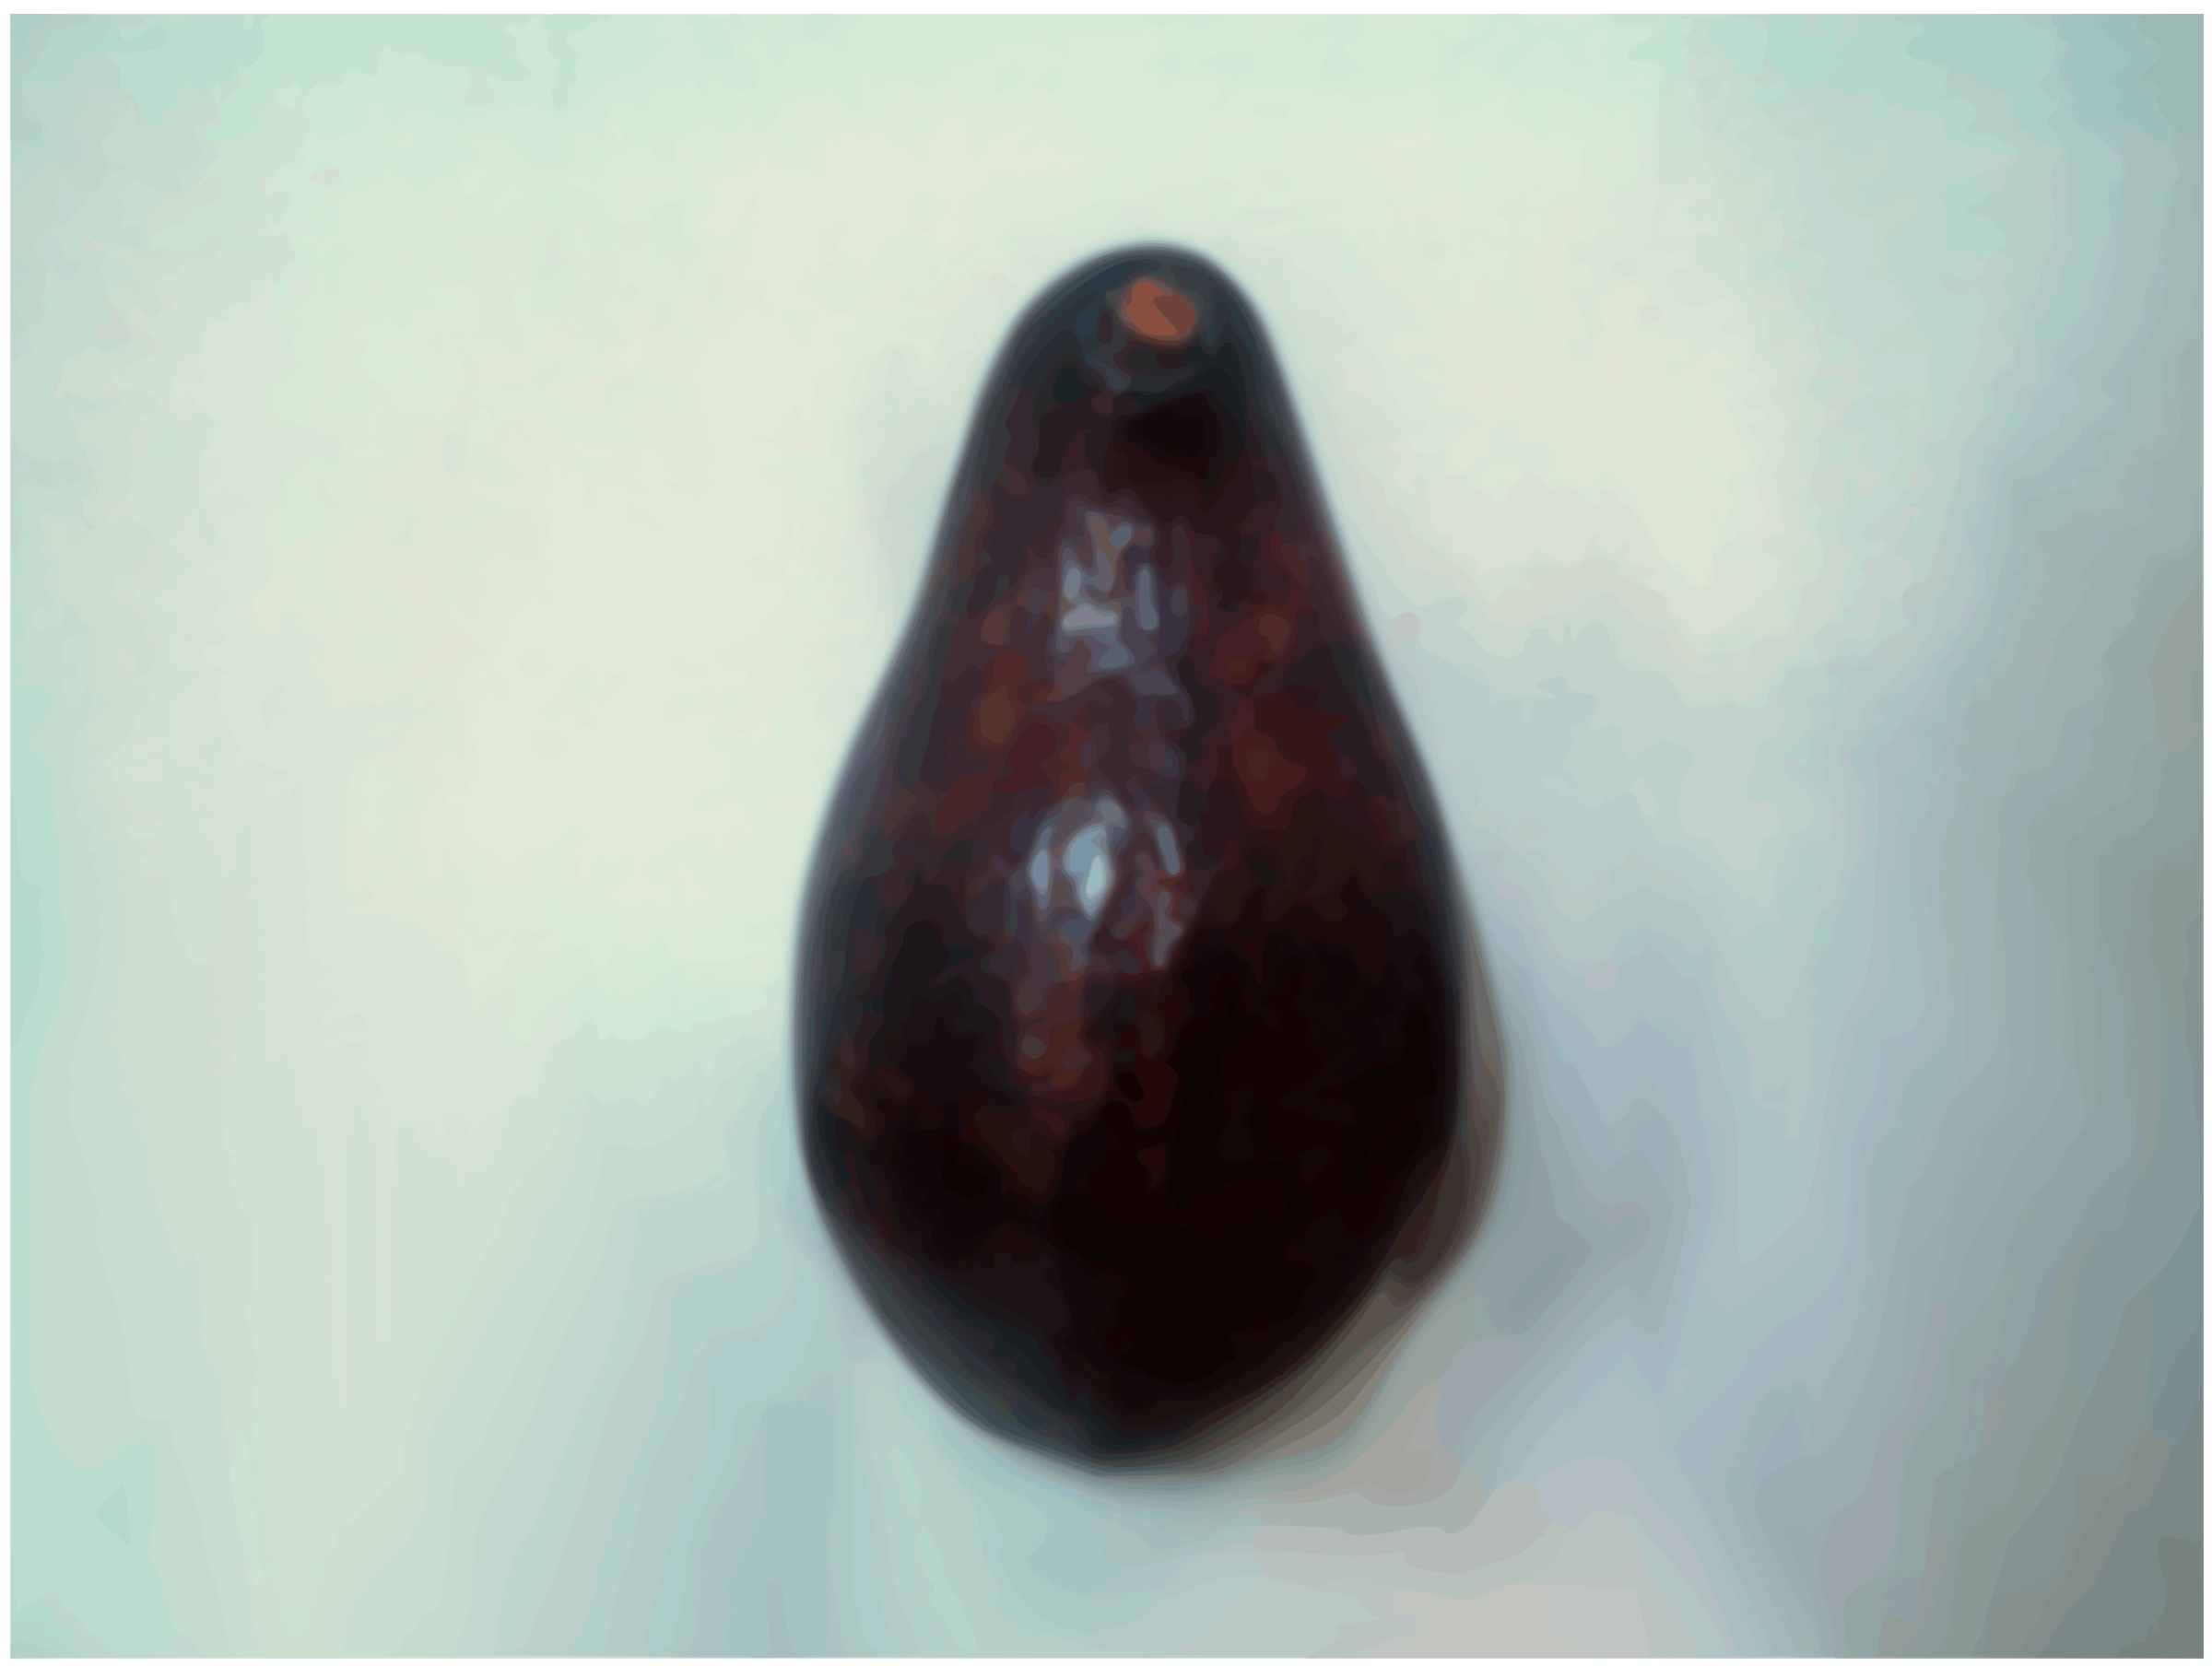 Avocado by fcocfg